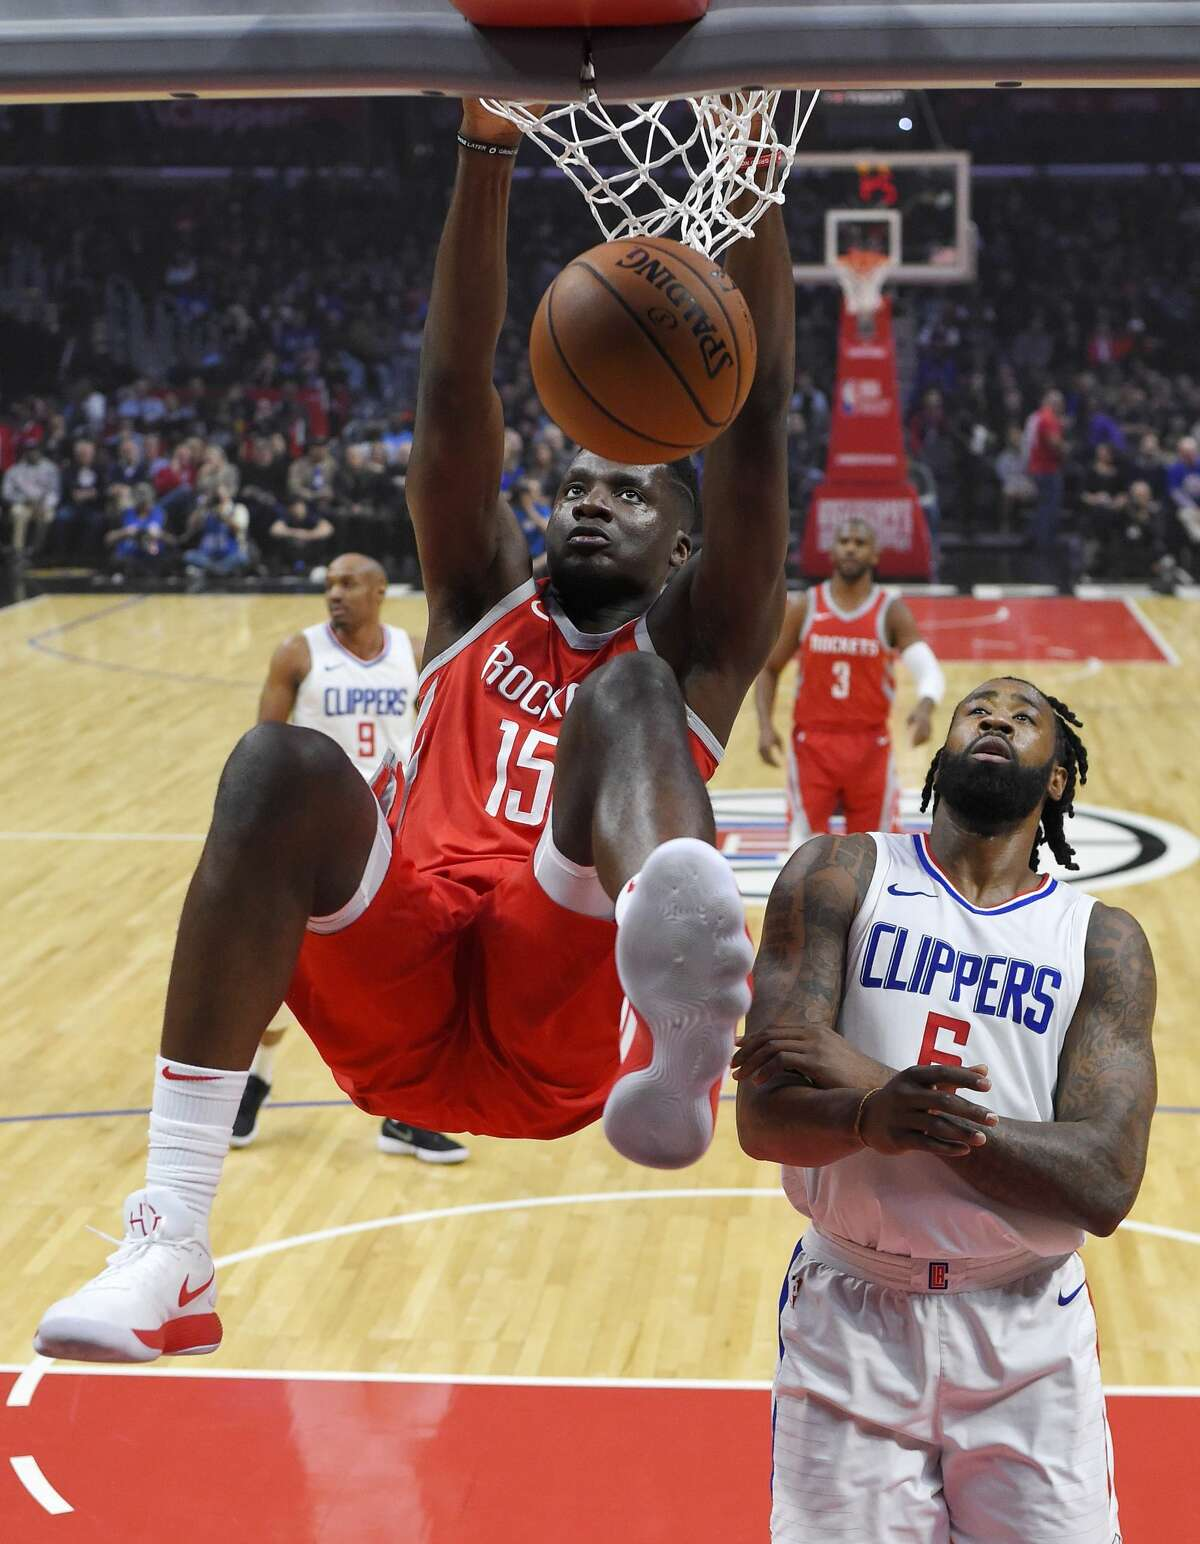 Houston Rockets center Clint Capela, left, dunks as Los Angeles Clippers center DeAndre Jordan defends during the first half of an NBA basketball game Wednesday, Feb. 28, 2018, in Los Angeles. (AP Photo/Mark J. Terrill)